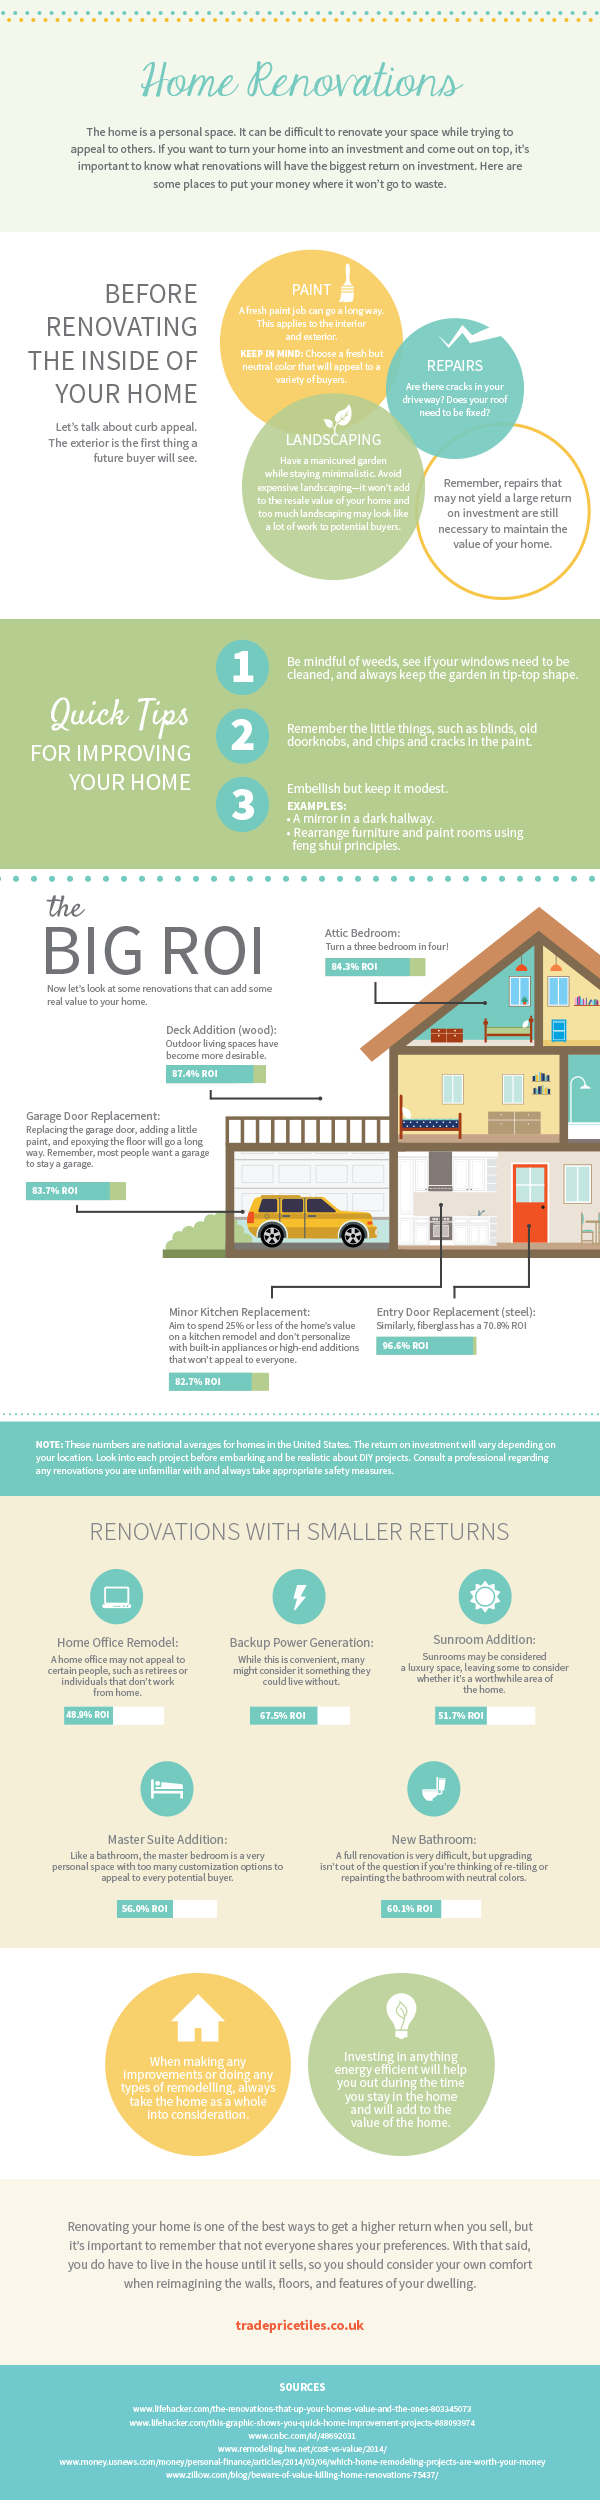 Maximise your property value when renovating